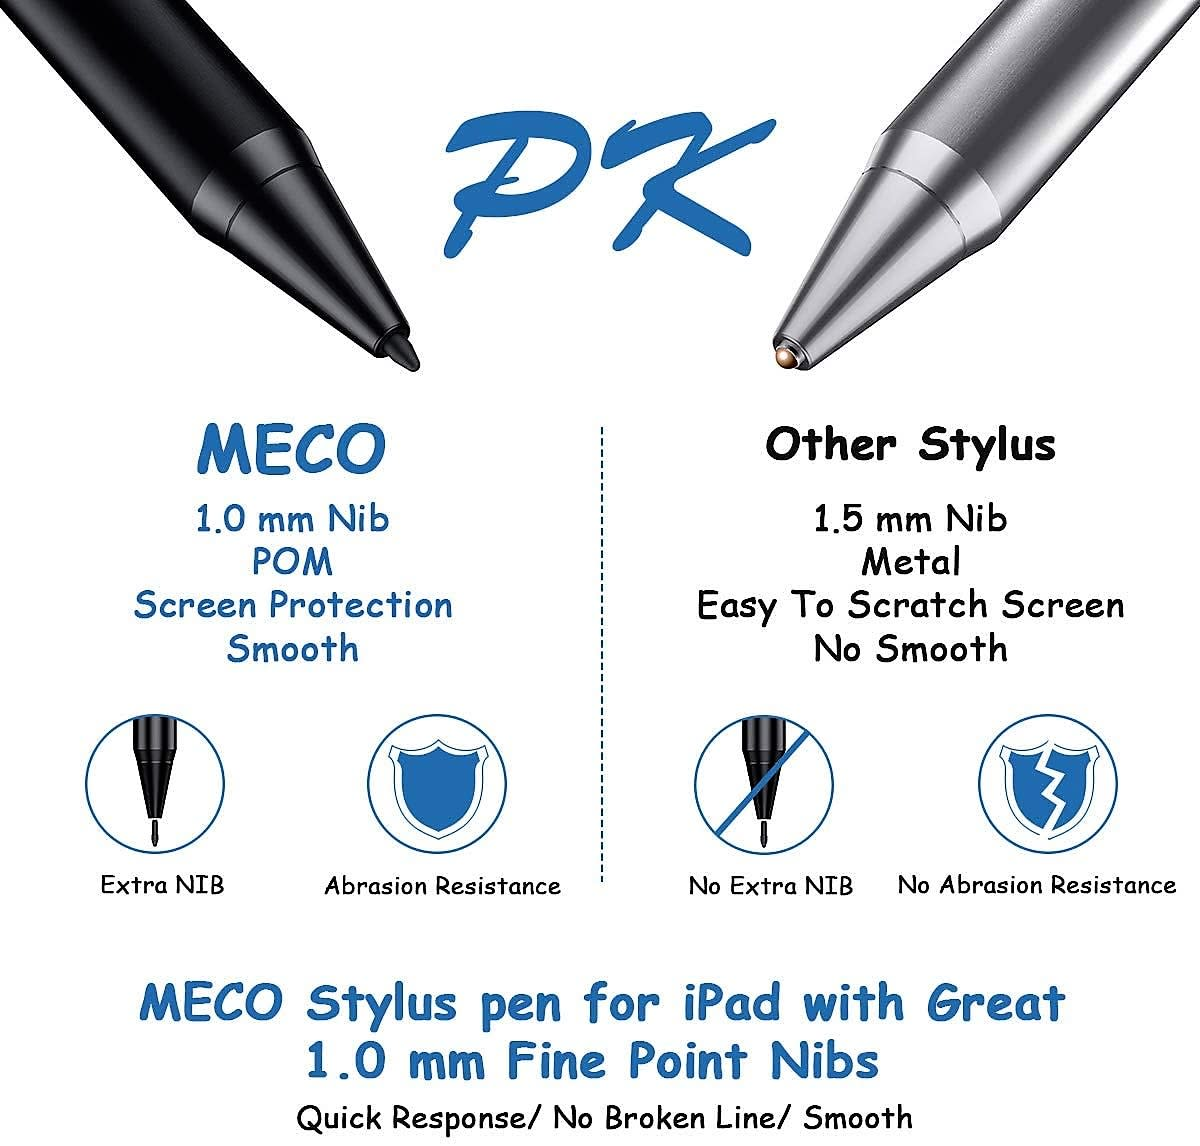 meco-stylus-for-ipad-review-digital-pen-for-writers-artists